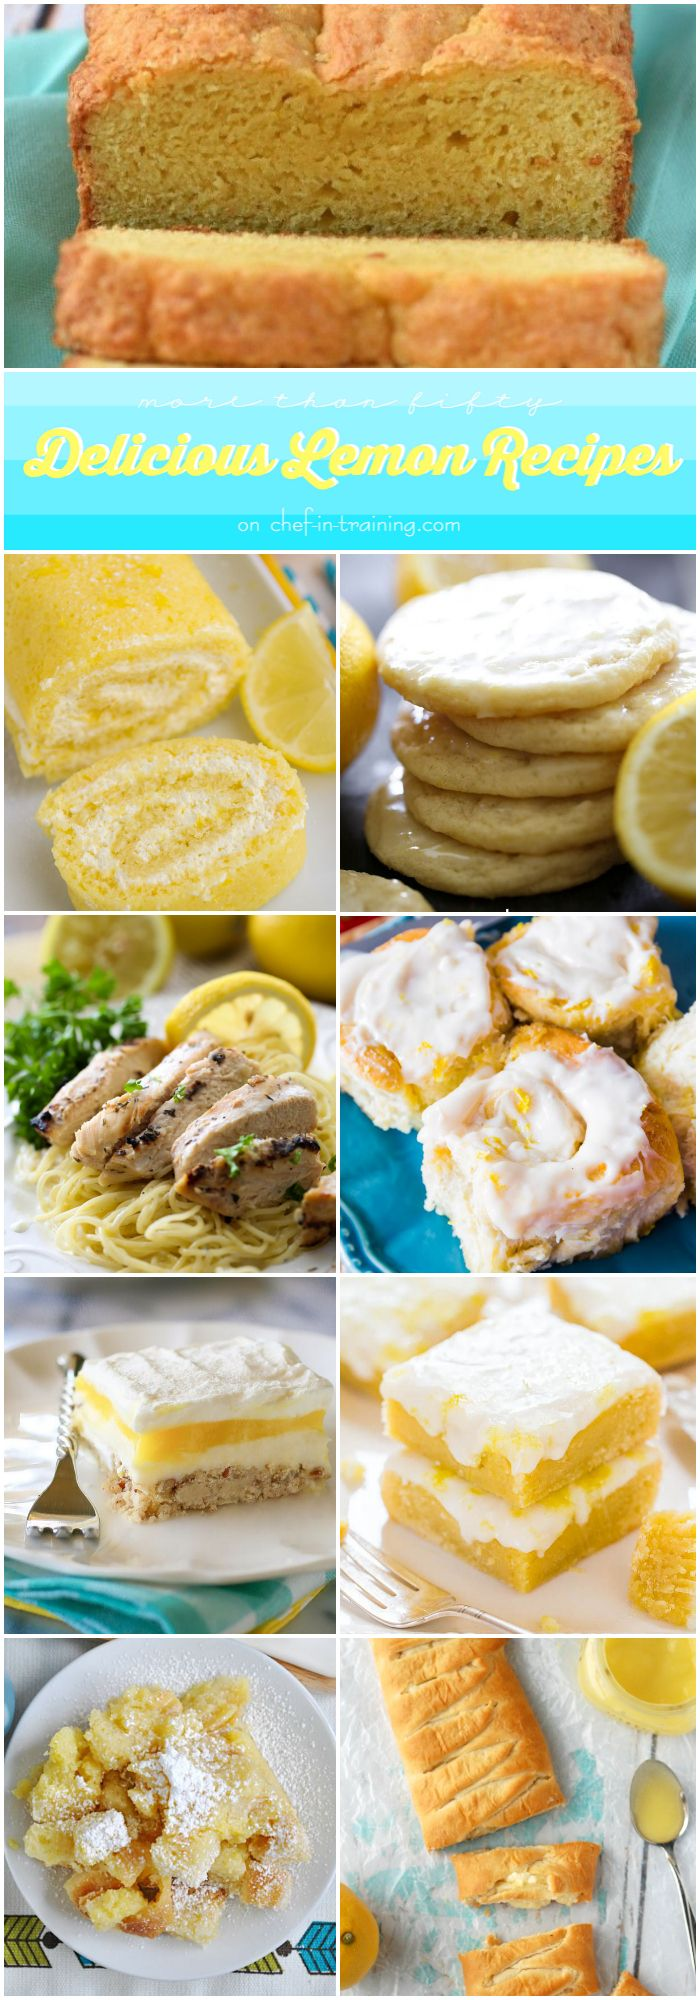 More than 50 Lemon Recipes at chef-in-training.com …Anything from breakfast, dinner and dessert, they all look amazing!